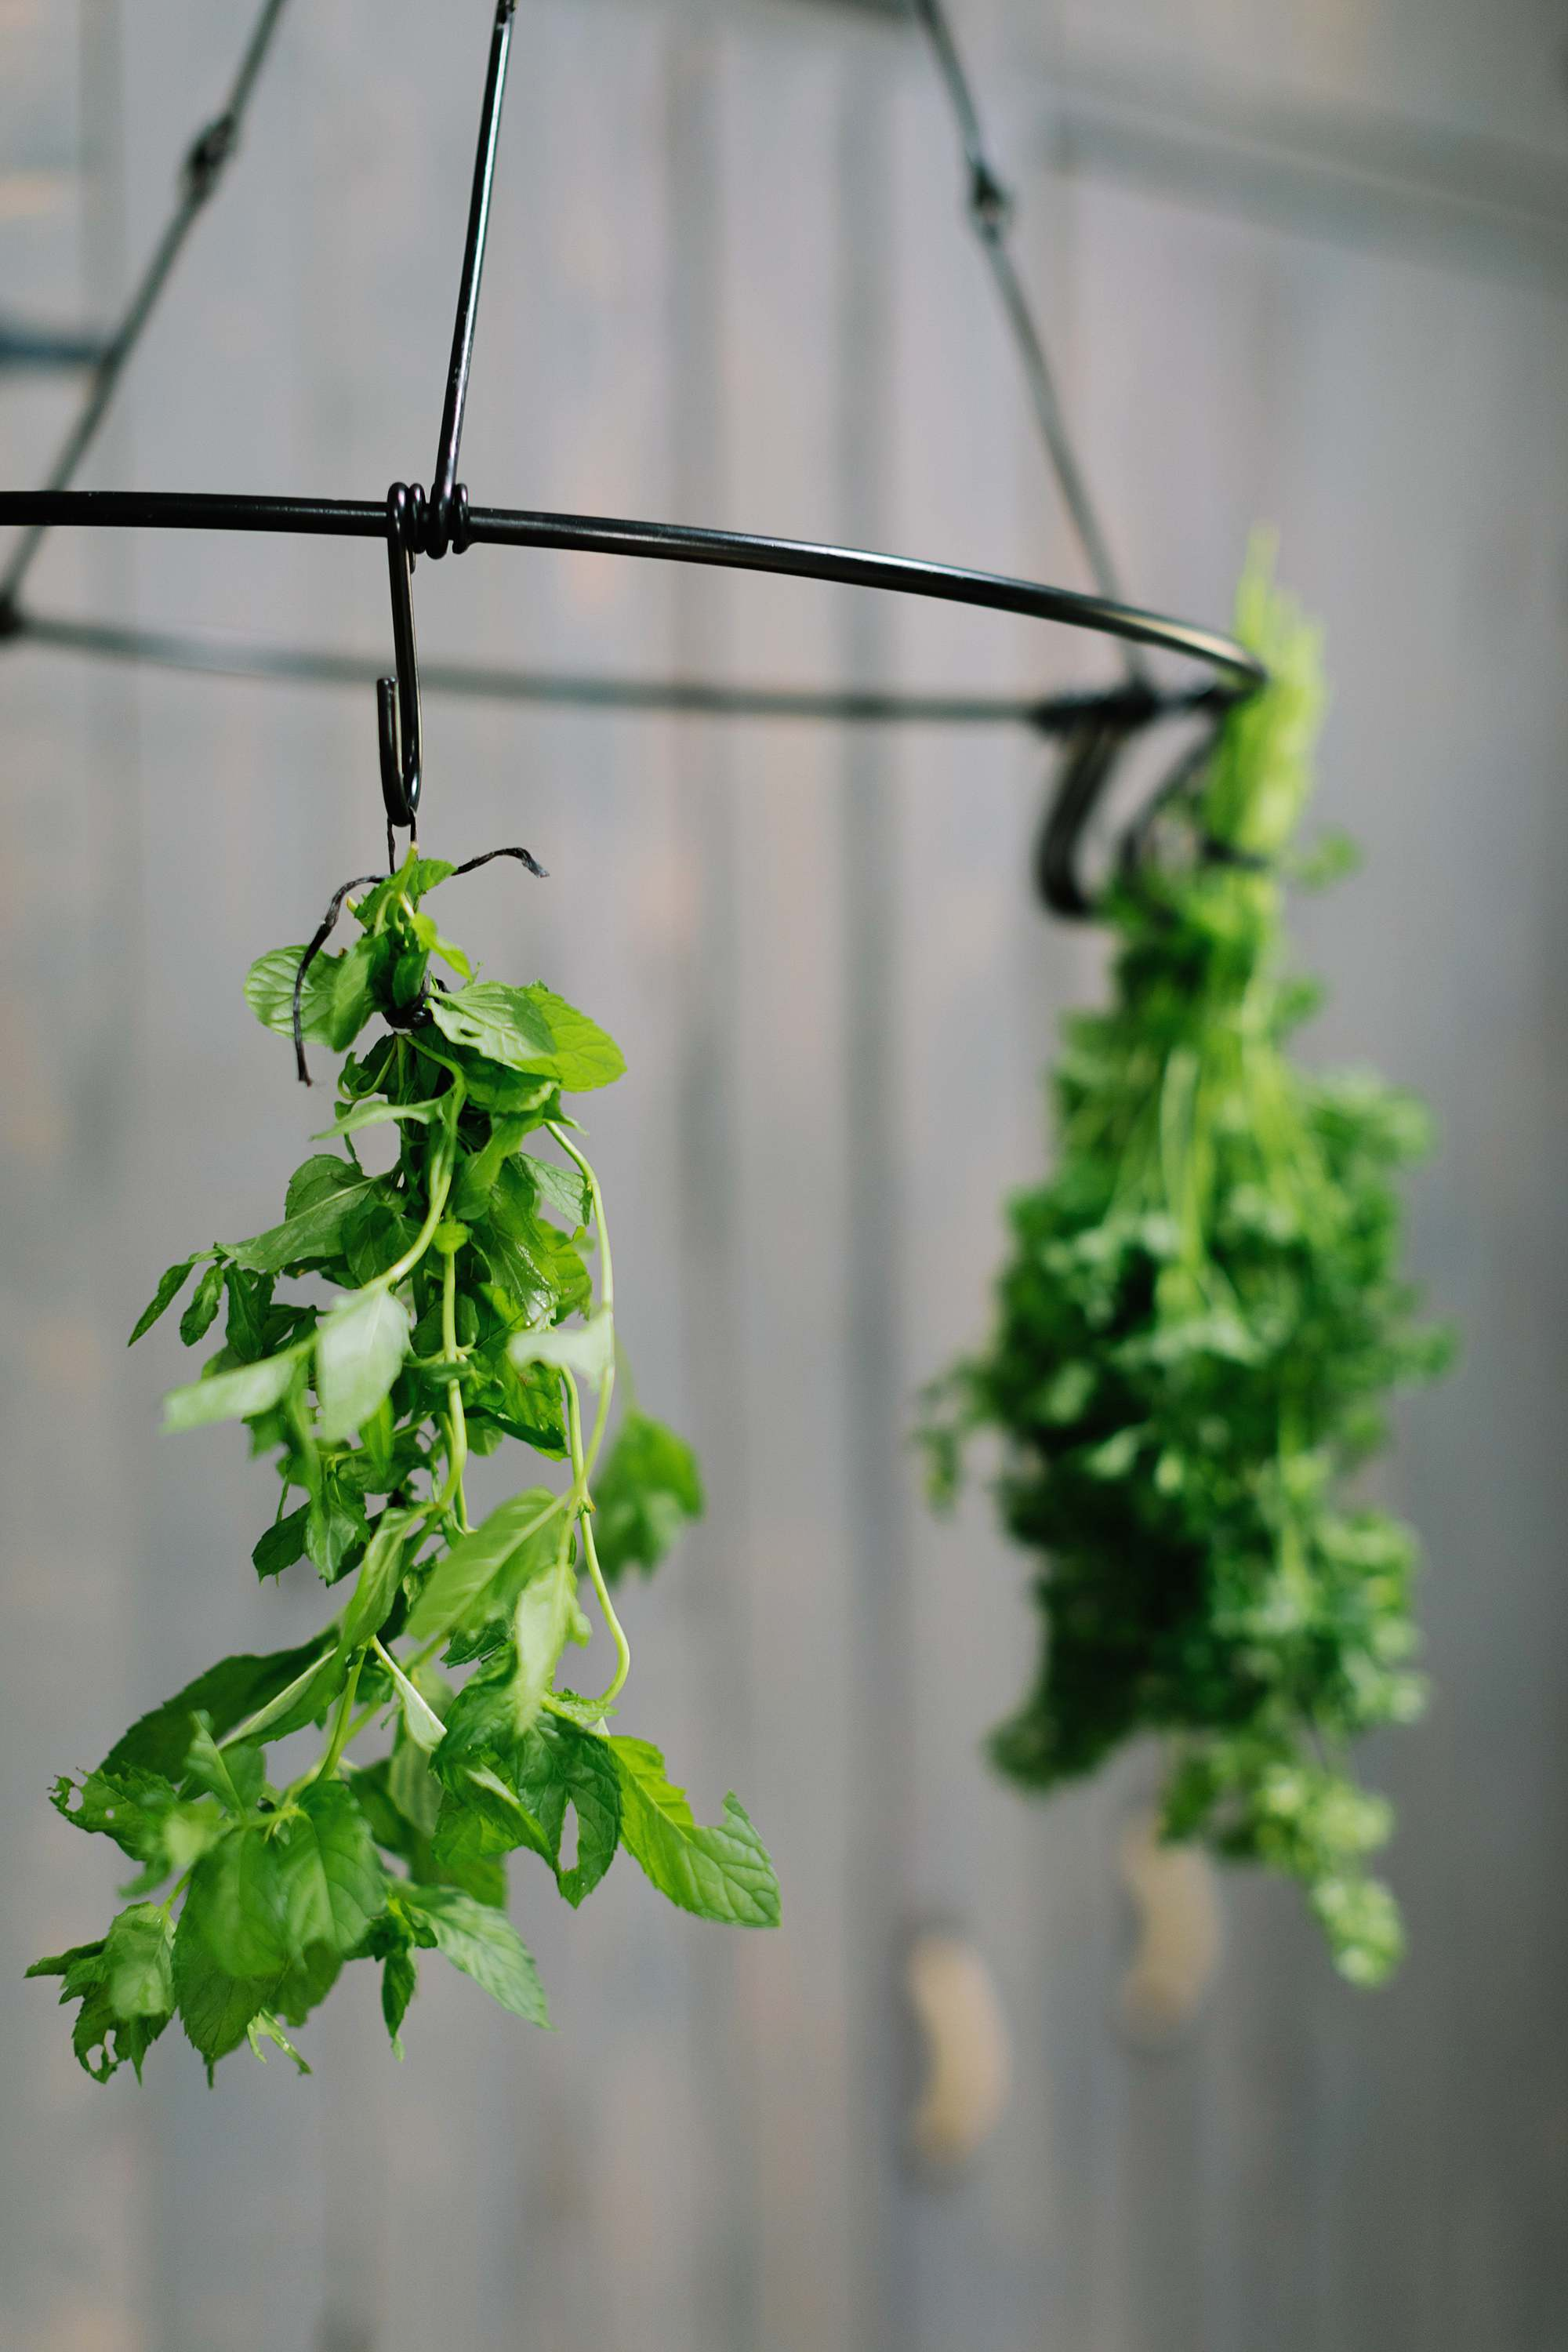 drying herbs on herb drying rack